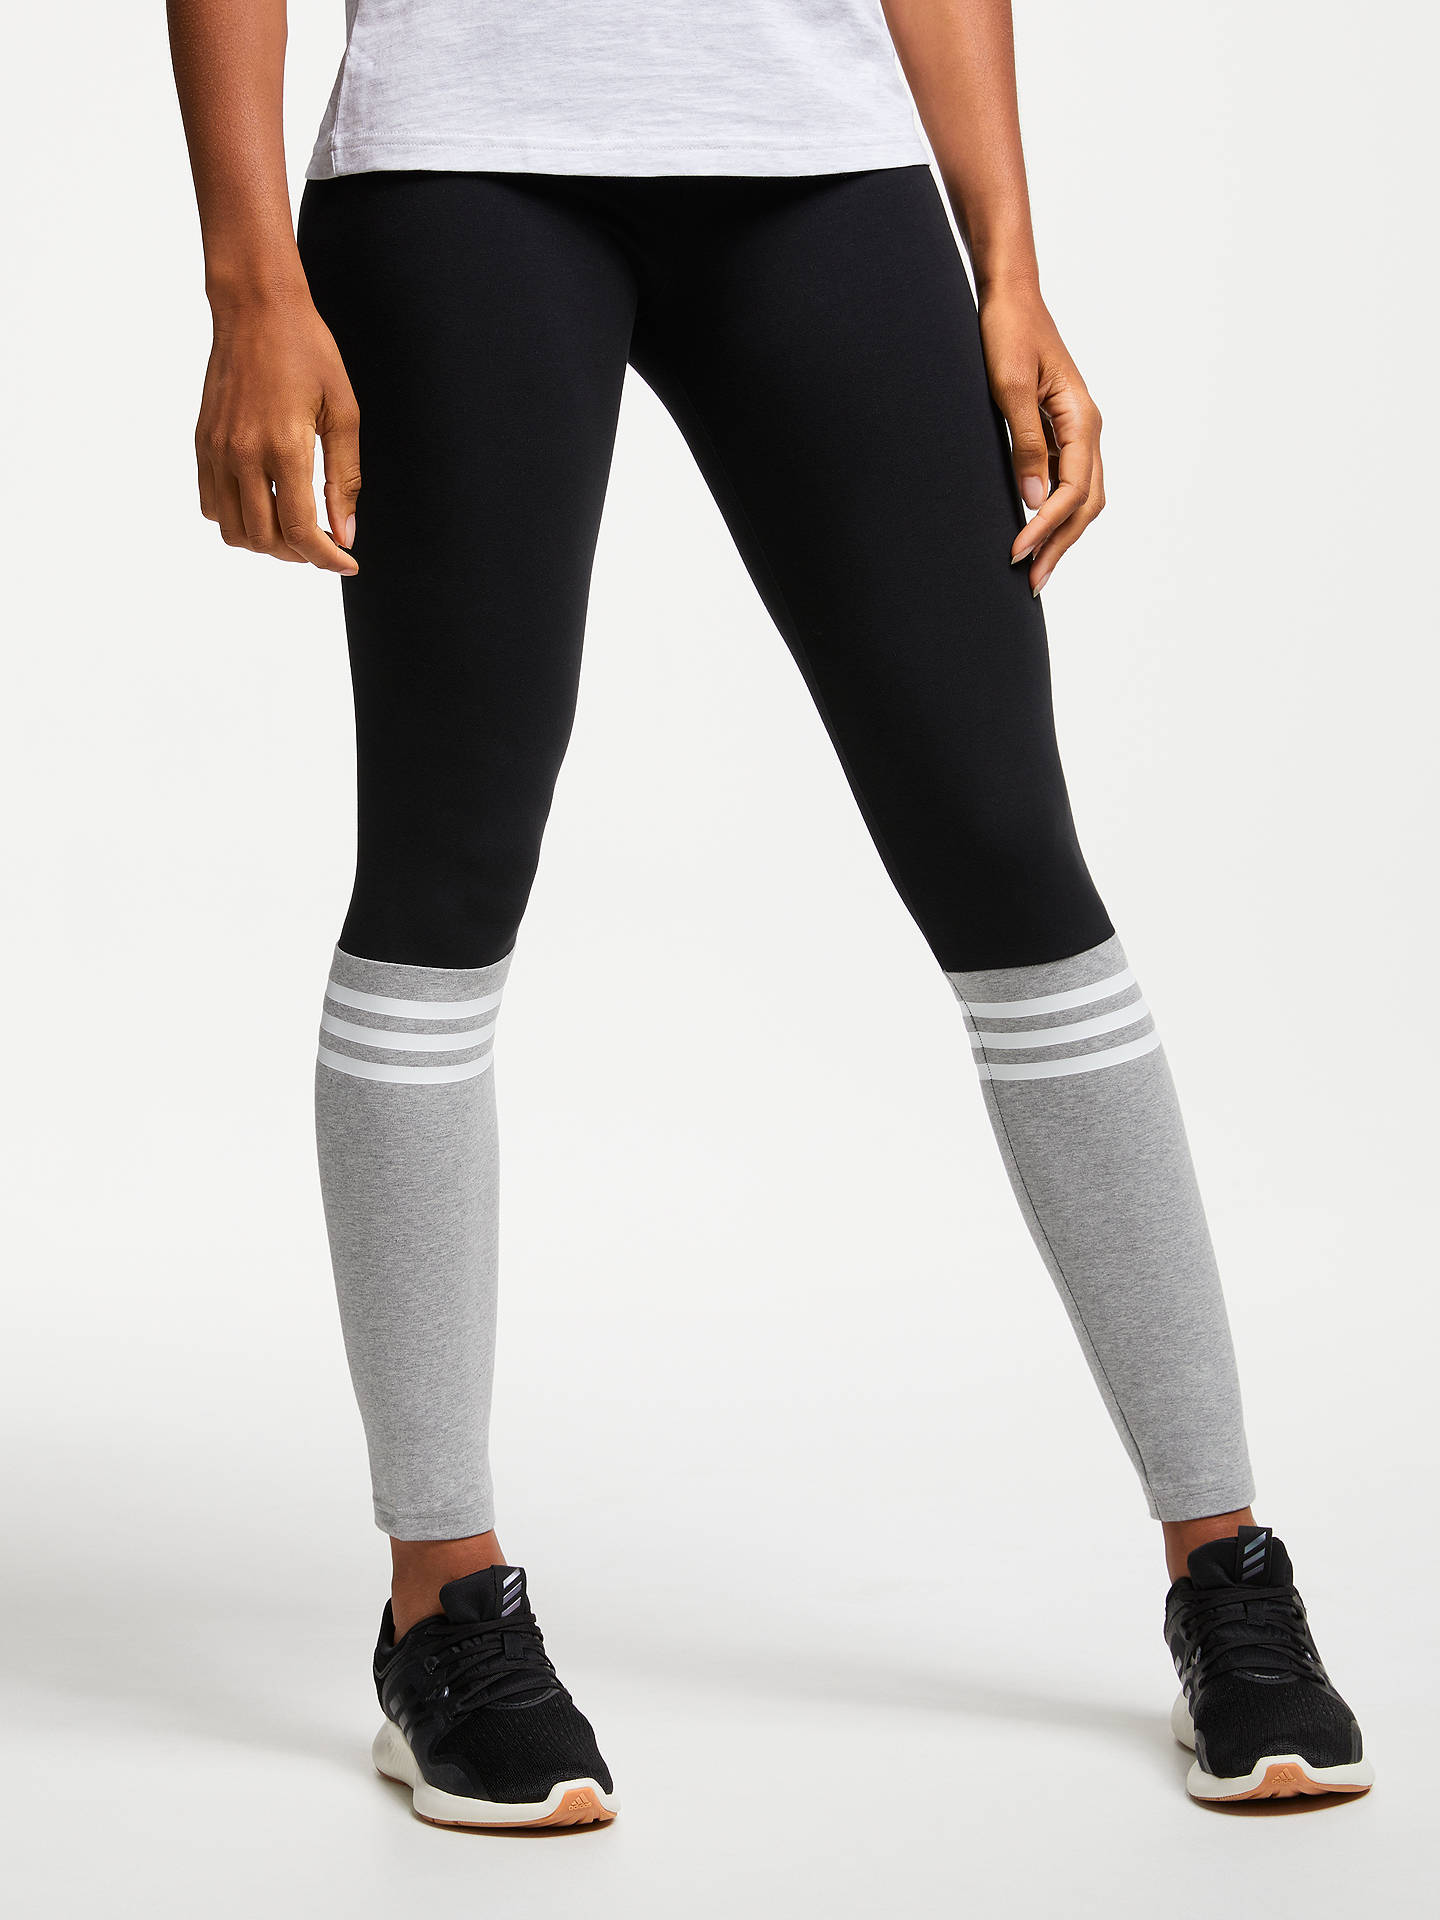 2be6013a3f744 Buy adidas Sport ID Tights, Black, XS Online at johnlewis.com ...